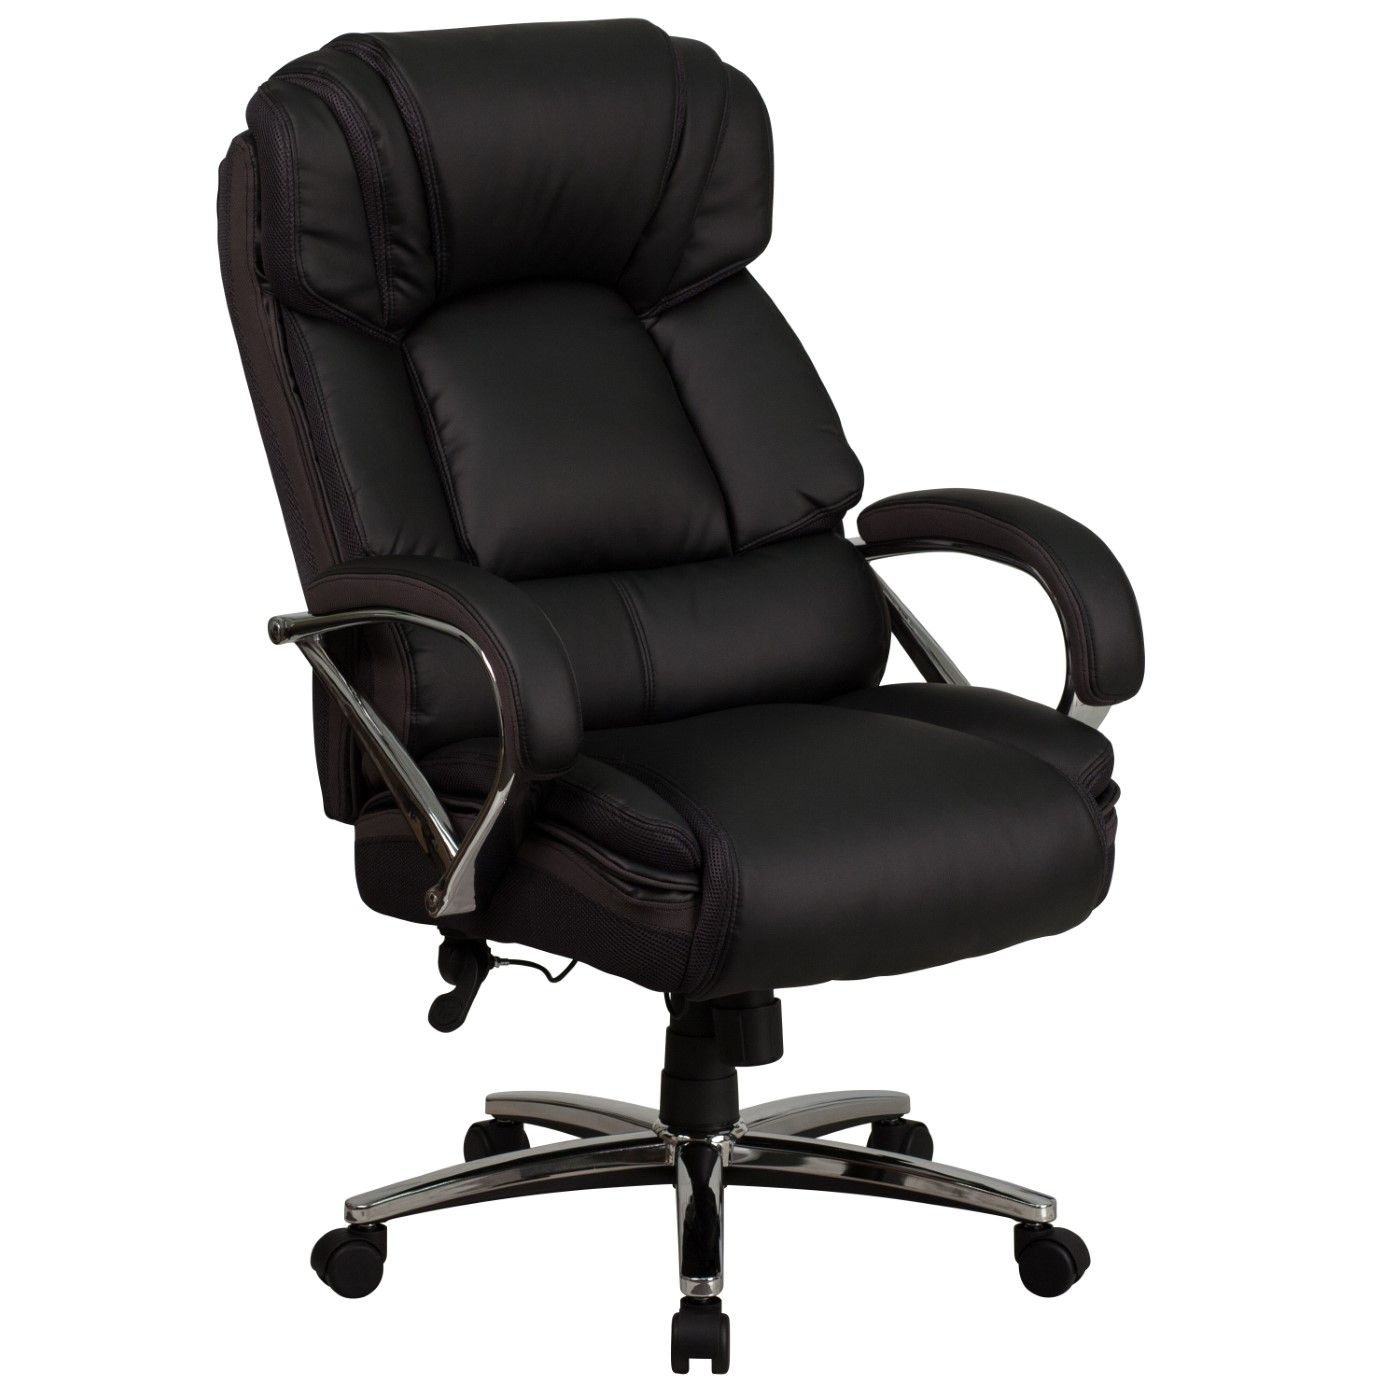 TOUGH ENOUGH Series Big & Tall 500 lb. Rated Black LeatherSoft Executive Swivel Ergonomic Office Chair with Chrome Base and Arms